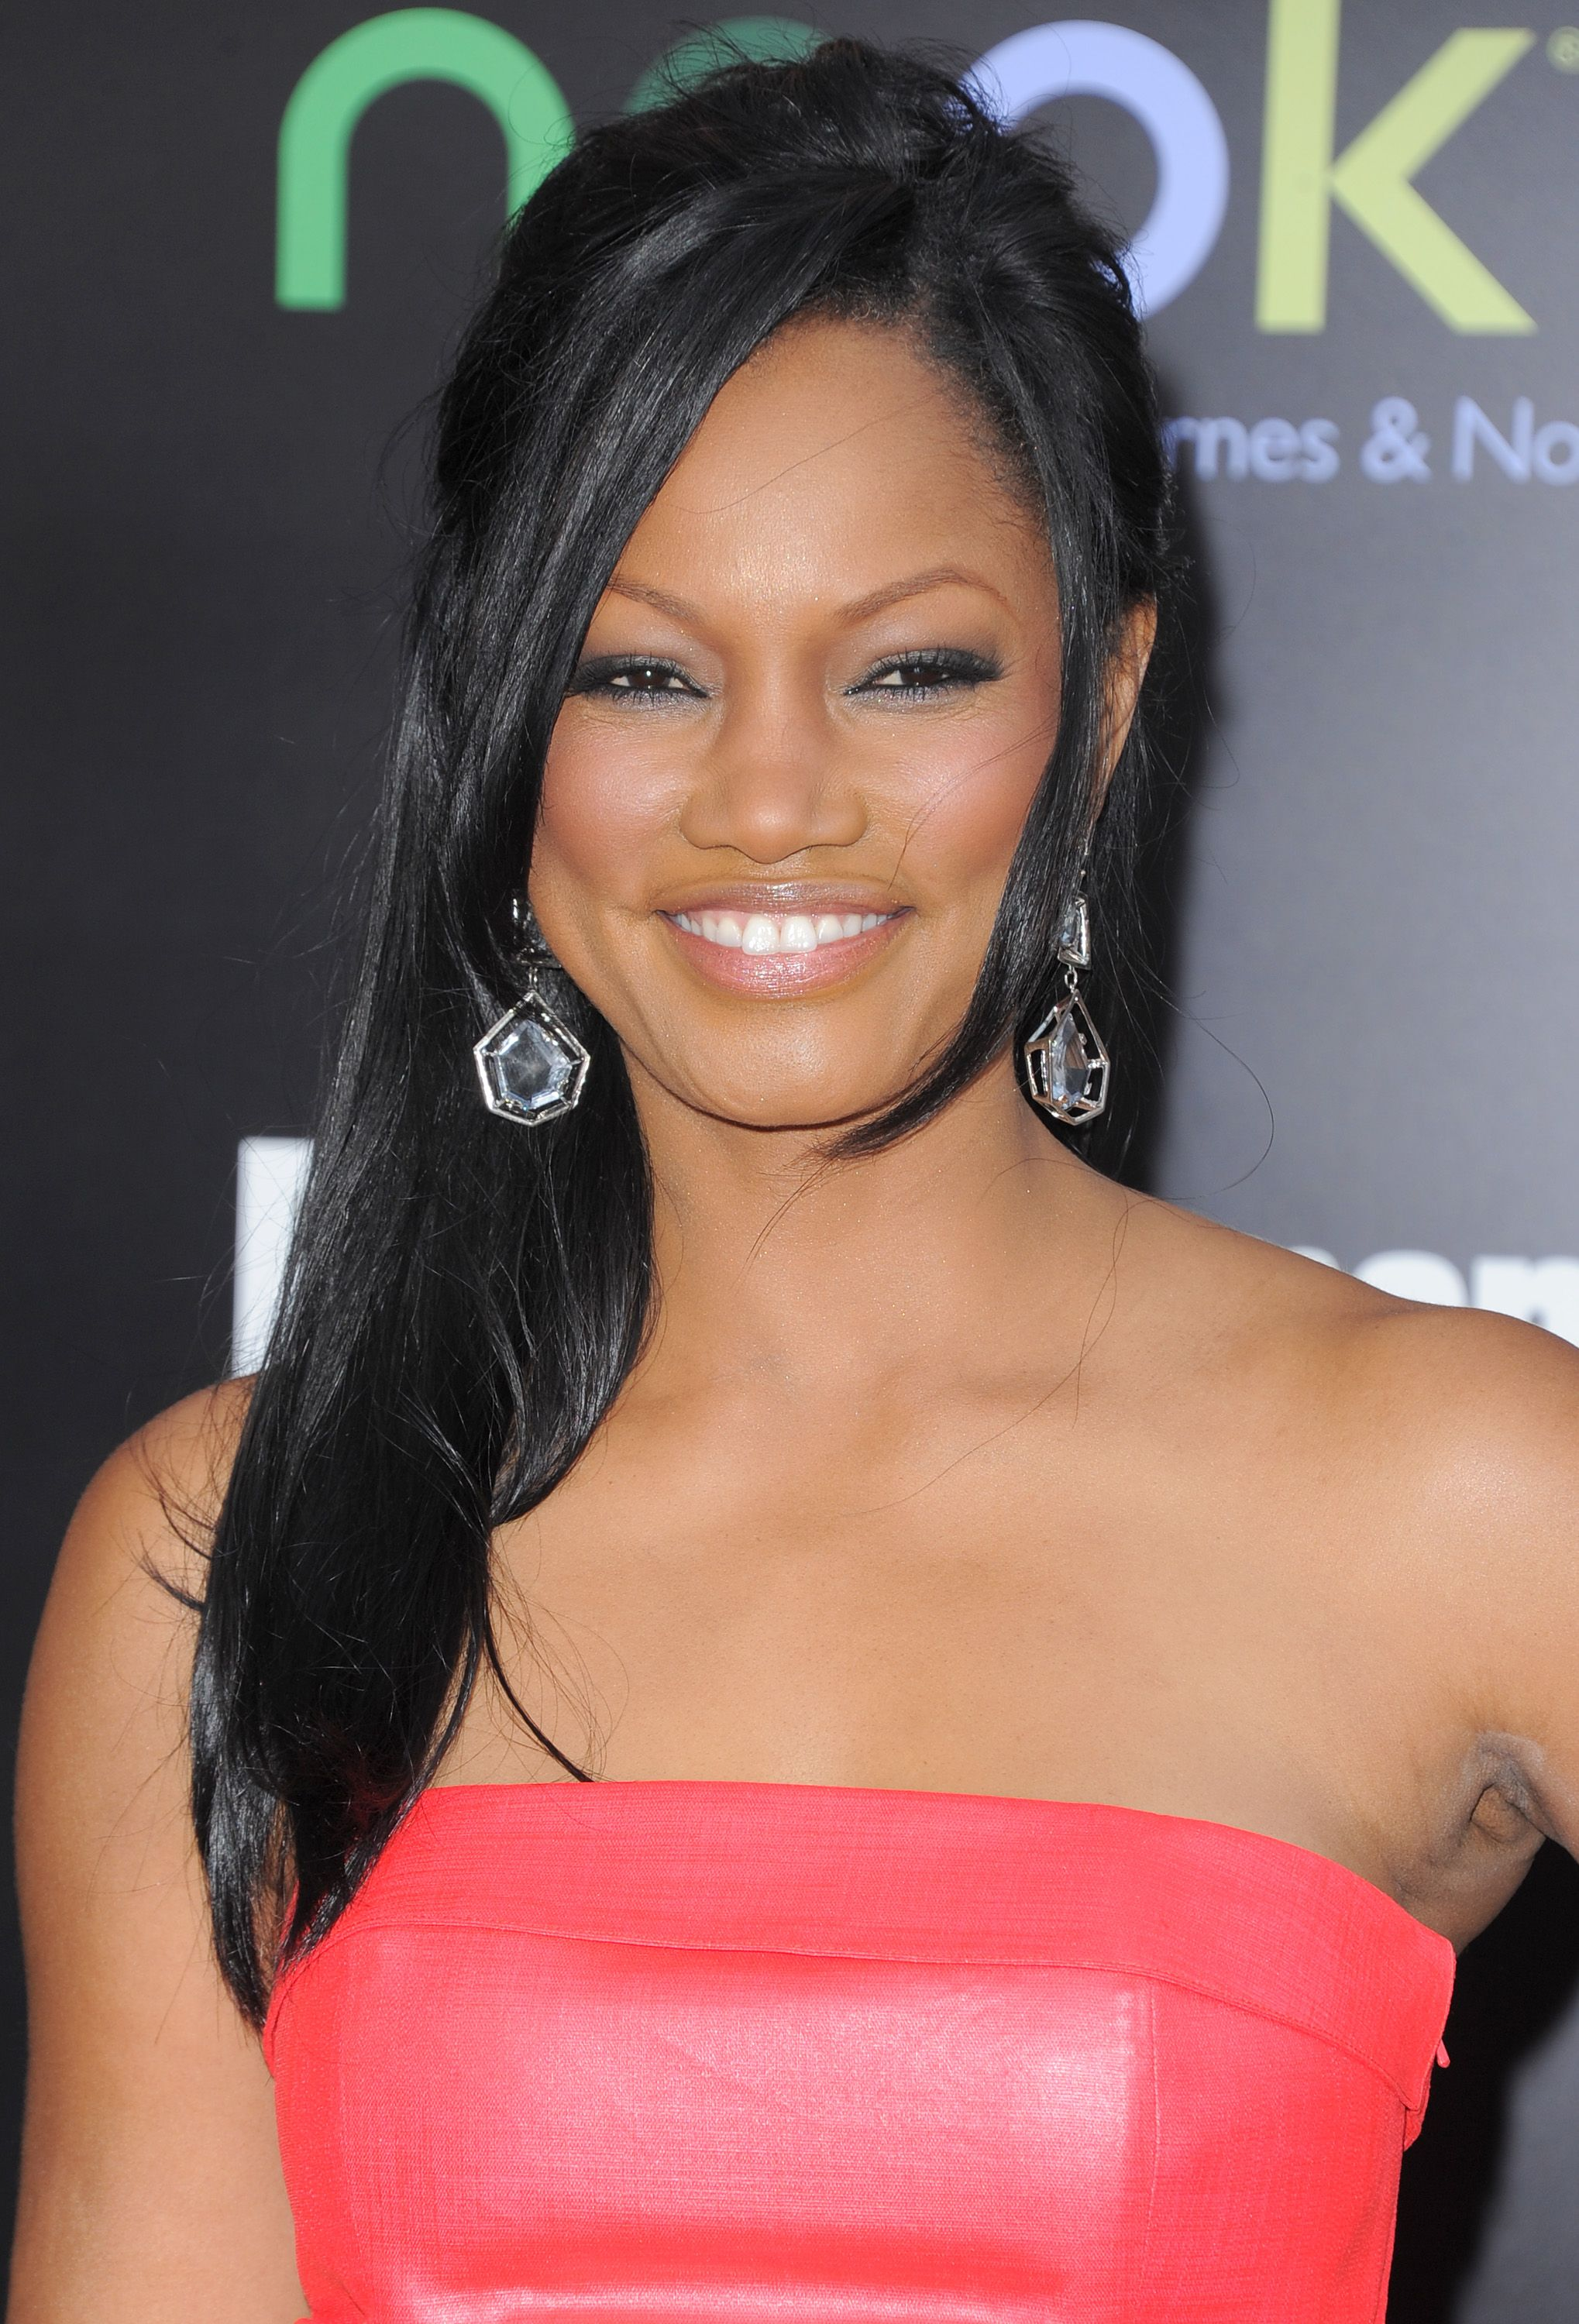 Celebrites Garcelle Beauvais nudes (87 foto and video), Sexy, Hot, Boobs, braless 2018